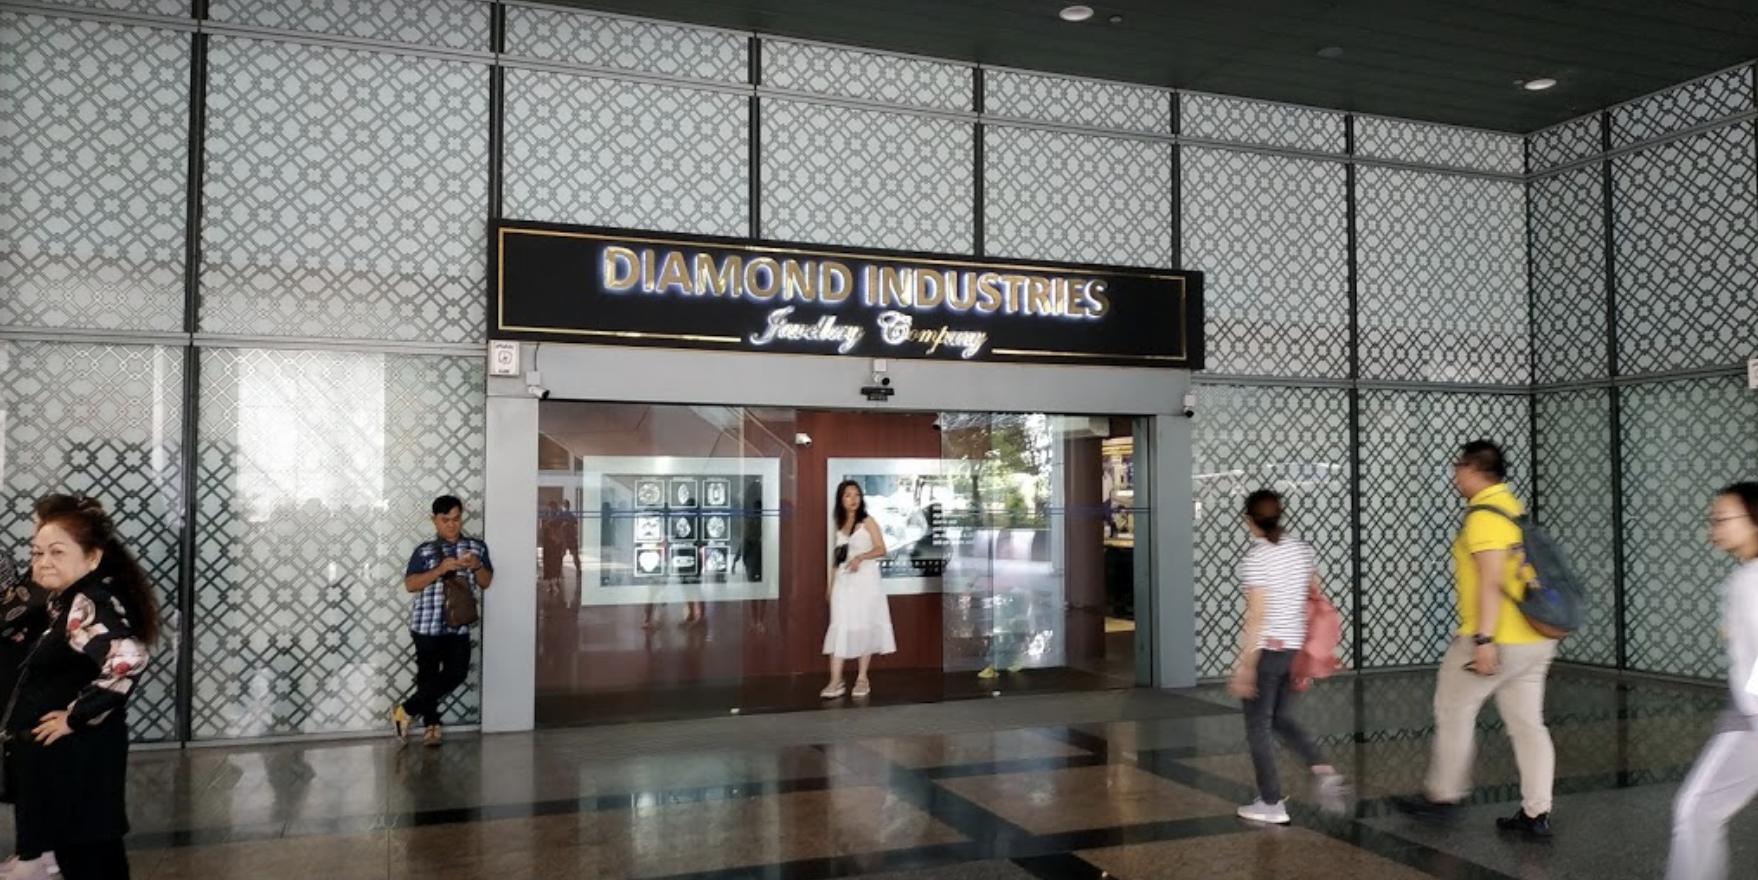 Diamond Industries Jewellery Company. Photo courtesy: Vu Hao Tran